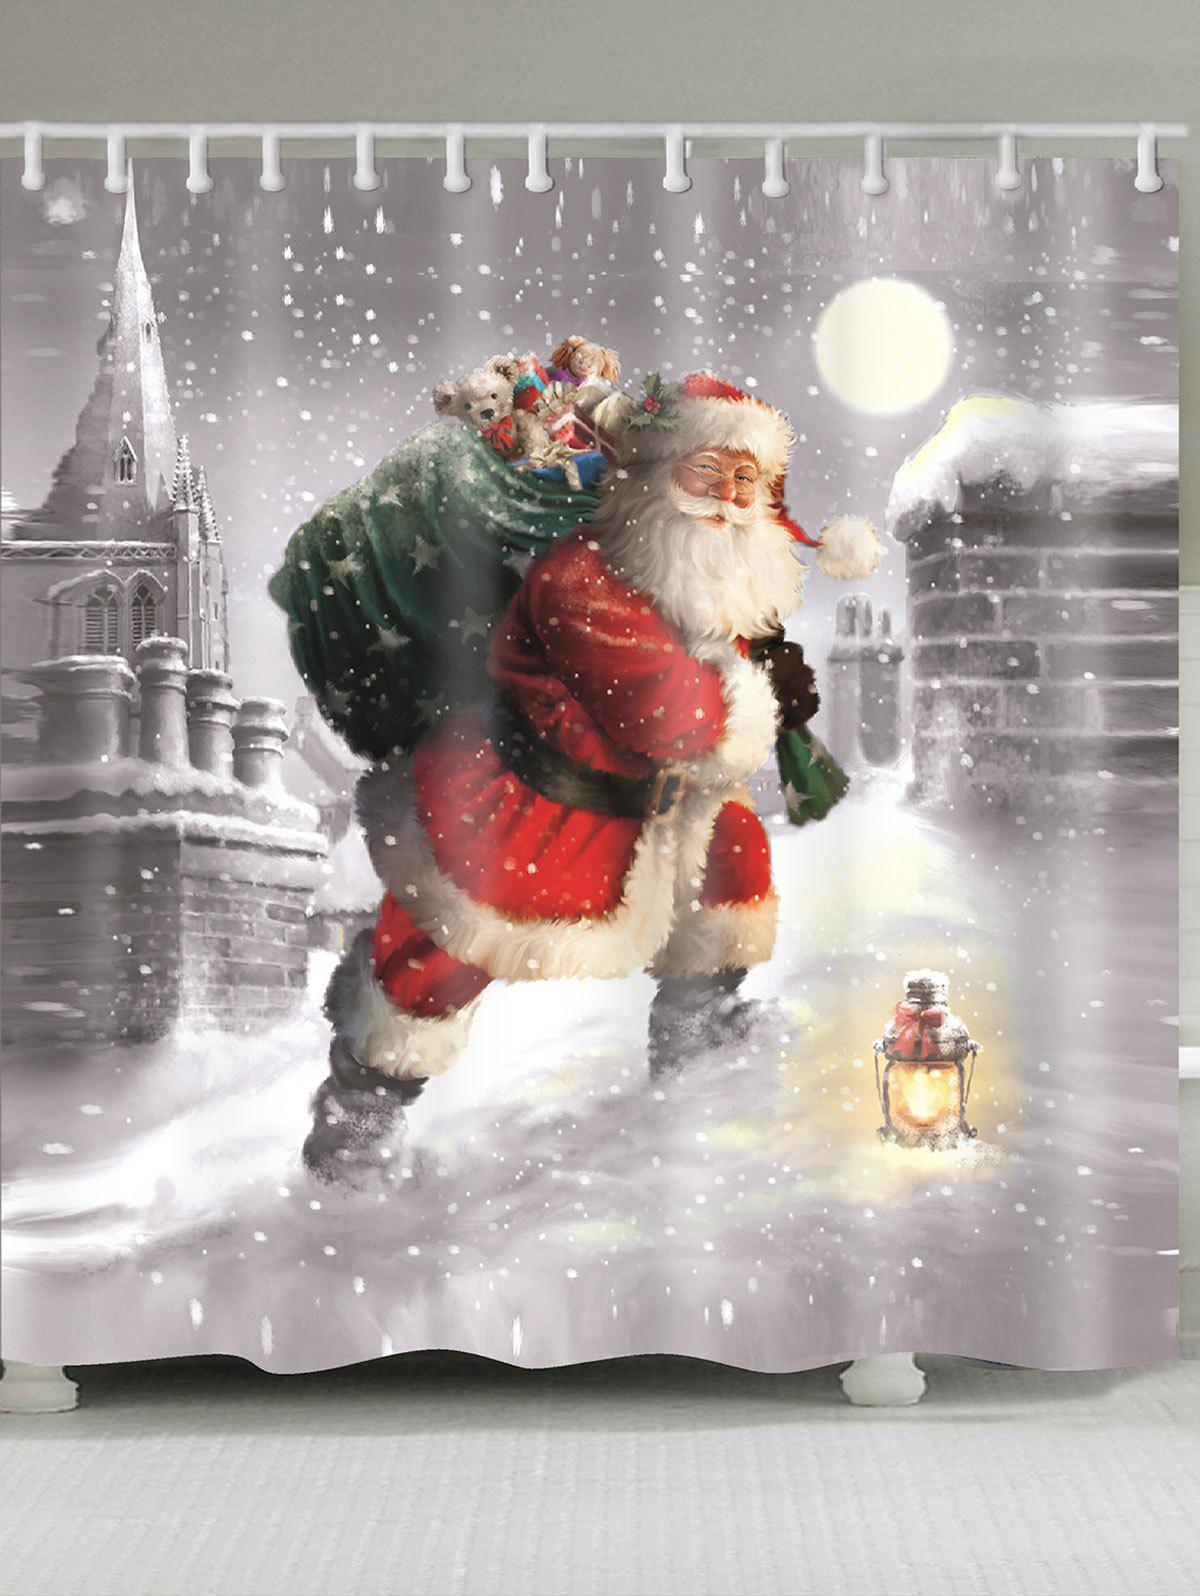 Waterproof Snow and Santa Claus Pattern Shower CurtainHOME<br><br>Size: W71 INCH * L71 INCH; Color: GRAY; Products Type: Shower Curtains; Materials: Polyester; Pattern: Santa Claus; Style: Festival; Number of Hook Holes: W59 inch*L71 inch: 10; W71 inch*L71 inch: 12; W71 inch*L79 inch: 12; Package Contents: 1 x Shower Curtain 1 x Hooks (Set);